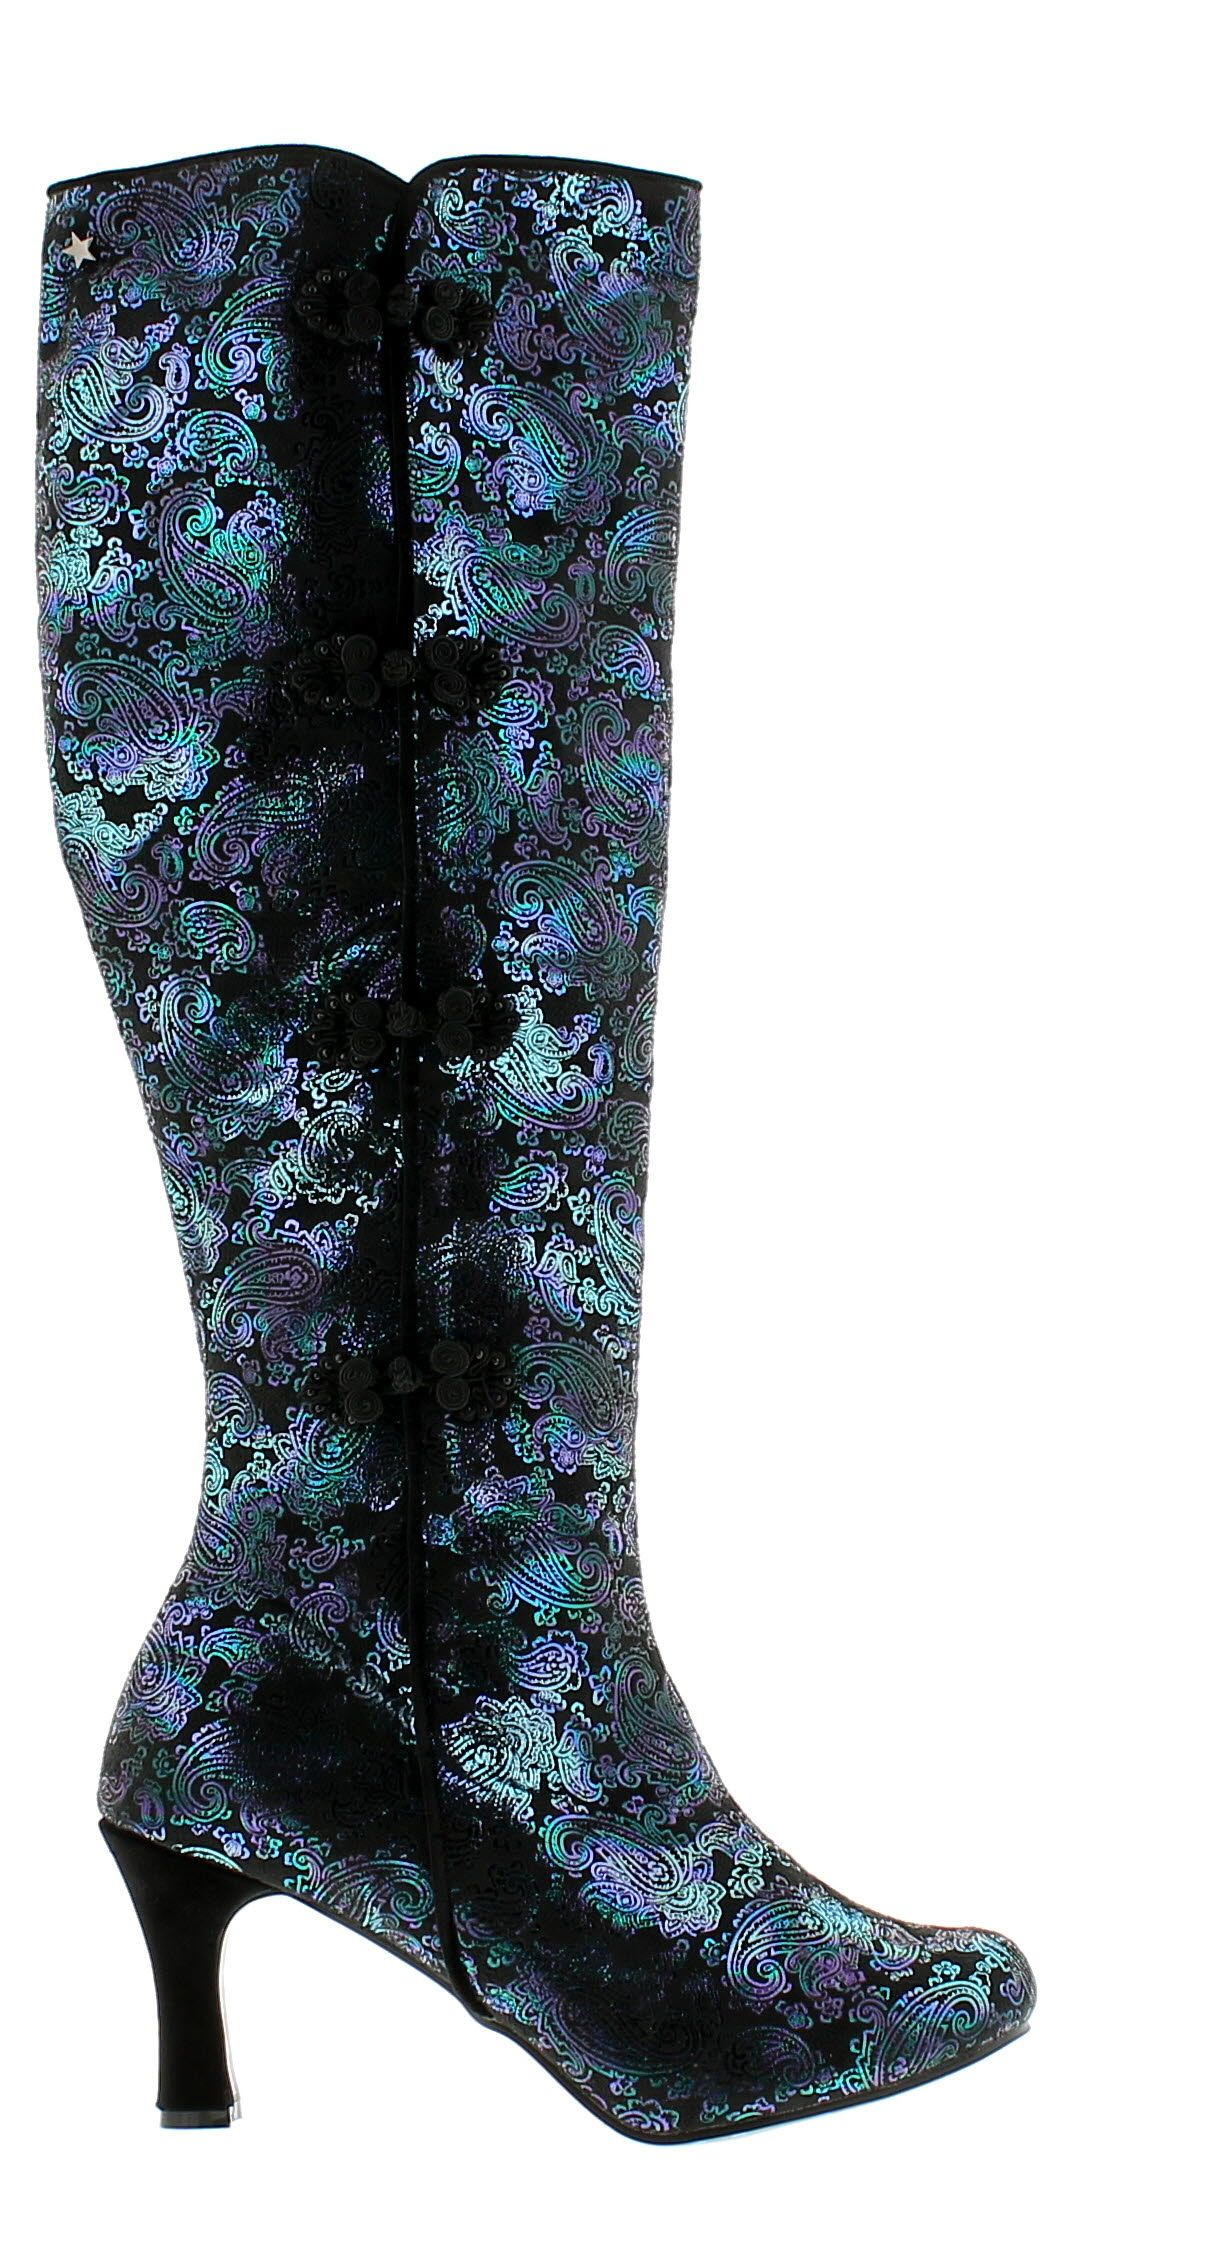 Joe Browns Couture spirit womens ladies boots